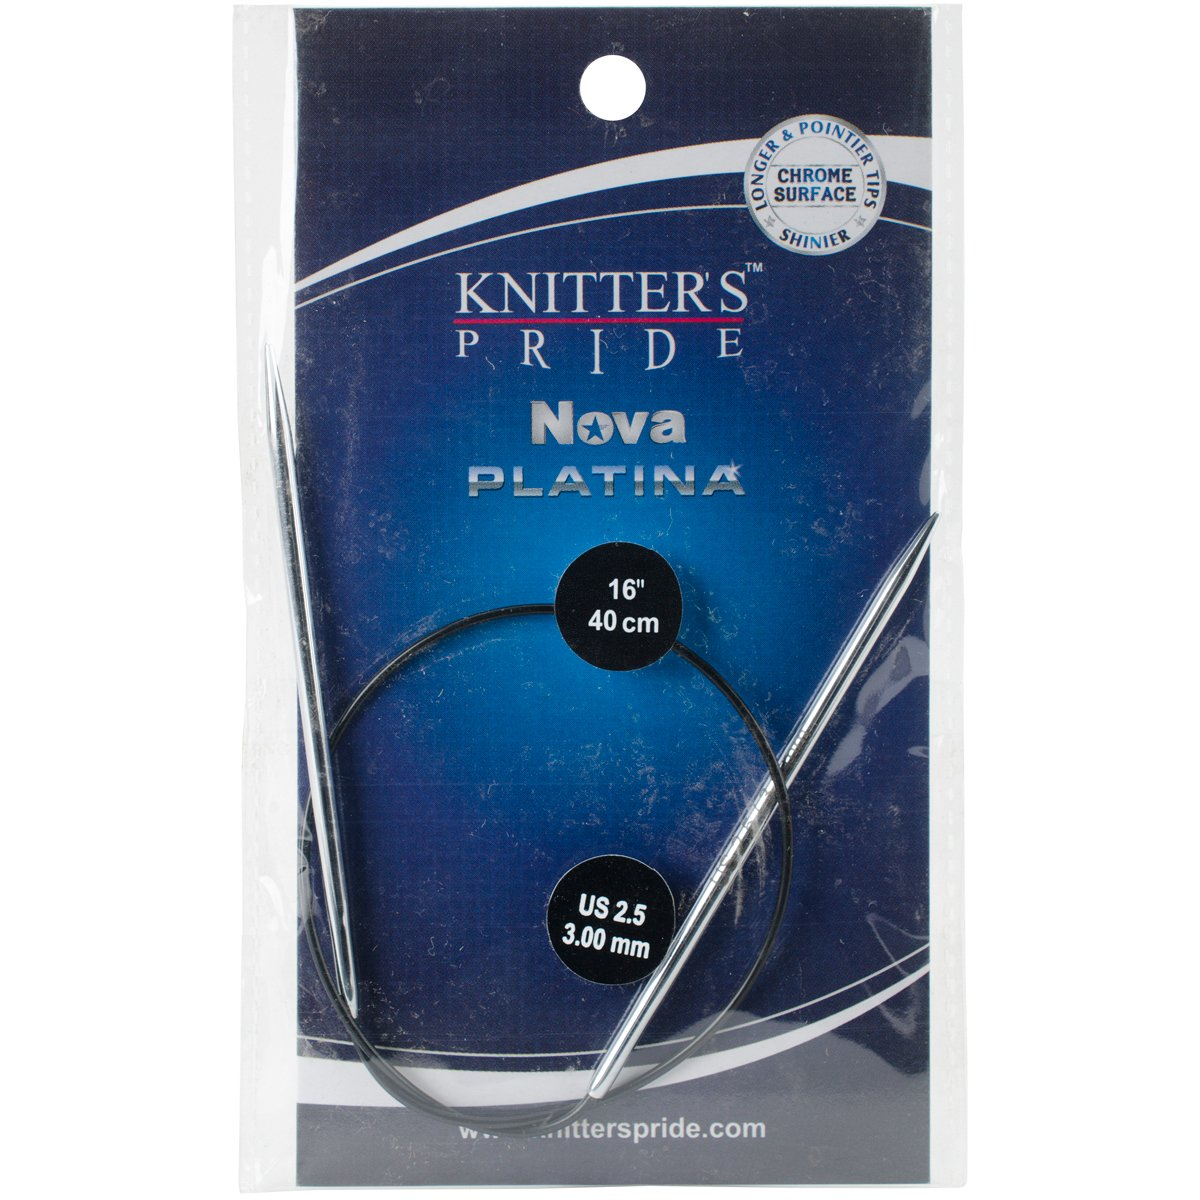 Knitter's Pride 2.5/3mm Nova Platina Double Pointed Needles, 16 by Knitter's Pride B00XUZST3C